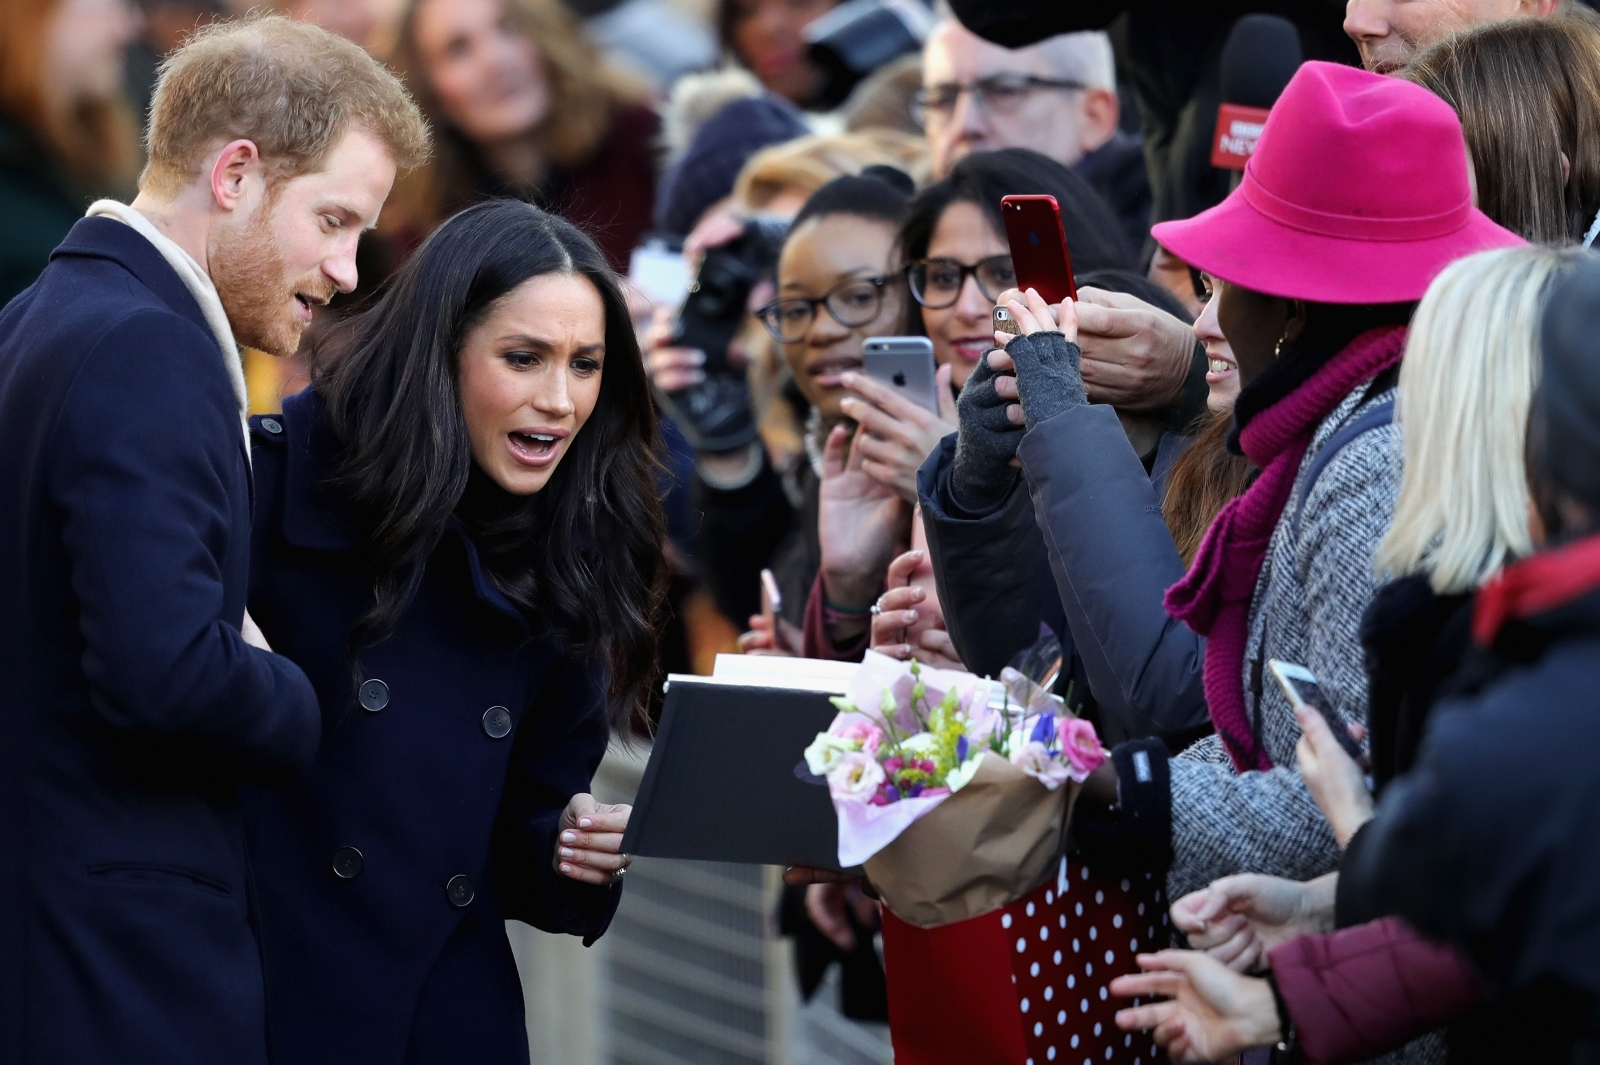 Royally awkward: Will Meghan Markle have to curtsey to Kate Middleton?